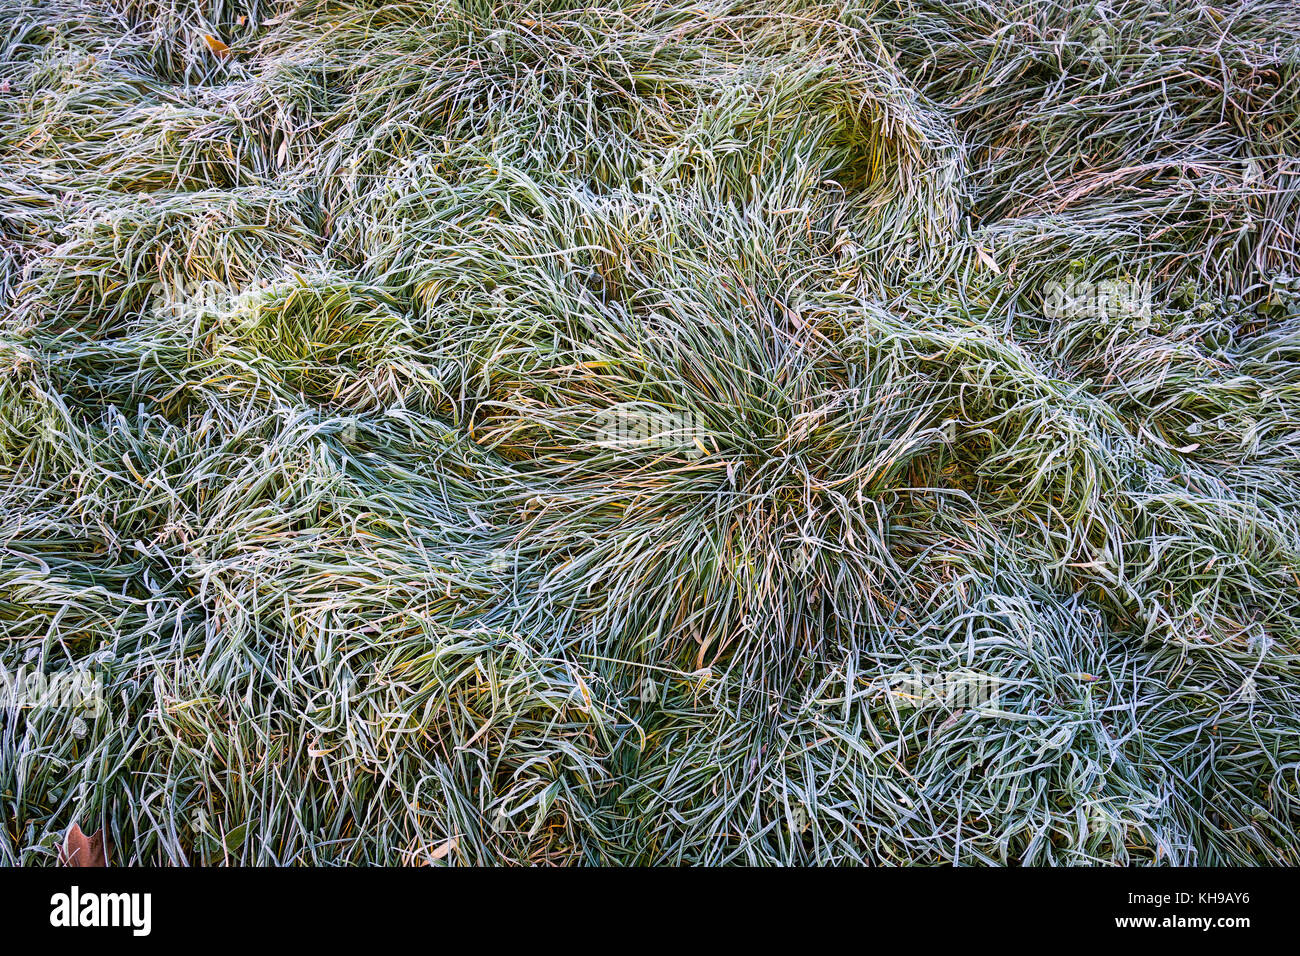 Frost on grass. - Stock Image